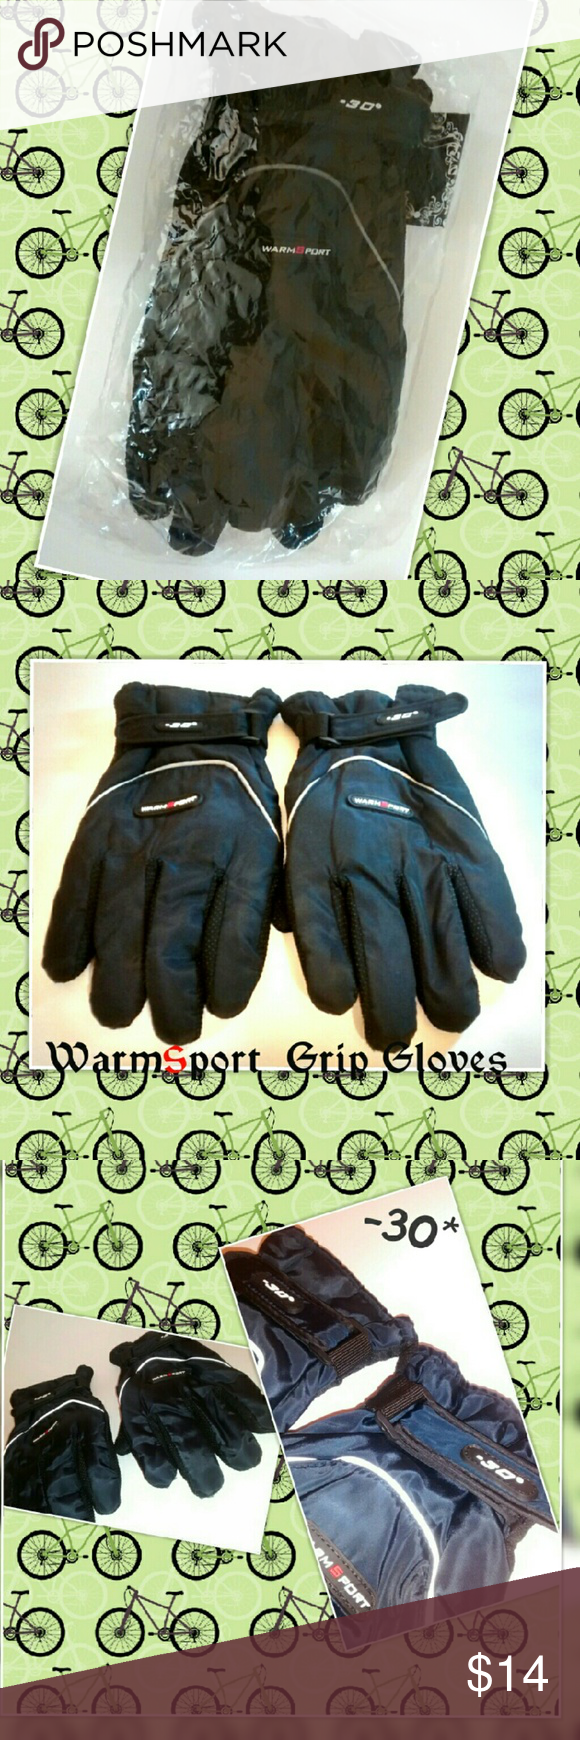 WarmSport Blue (-30?) Adjustable Sport Grip Gloves These gloves are new in package.  Only tried on.  Color: Blue  Men's Size Large I believe.  Adjustable wrist straps.  Finger and Palm Grip texture.  Interior fleece material.  -30? temps and I believe they are waterproof.   Smoke and Pet free home. WarmSport Accessories Gloves